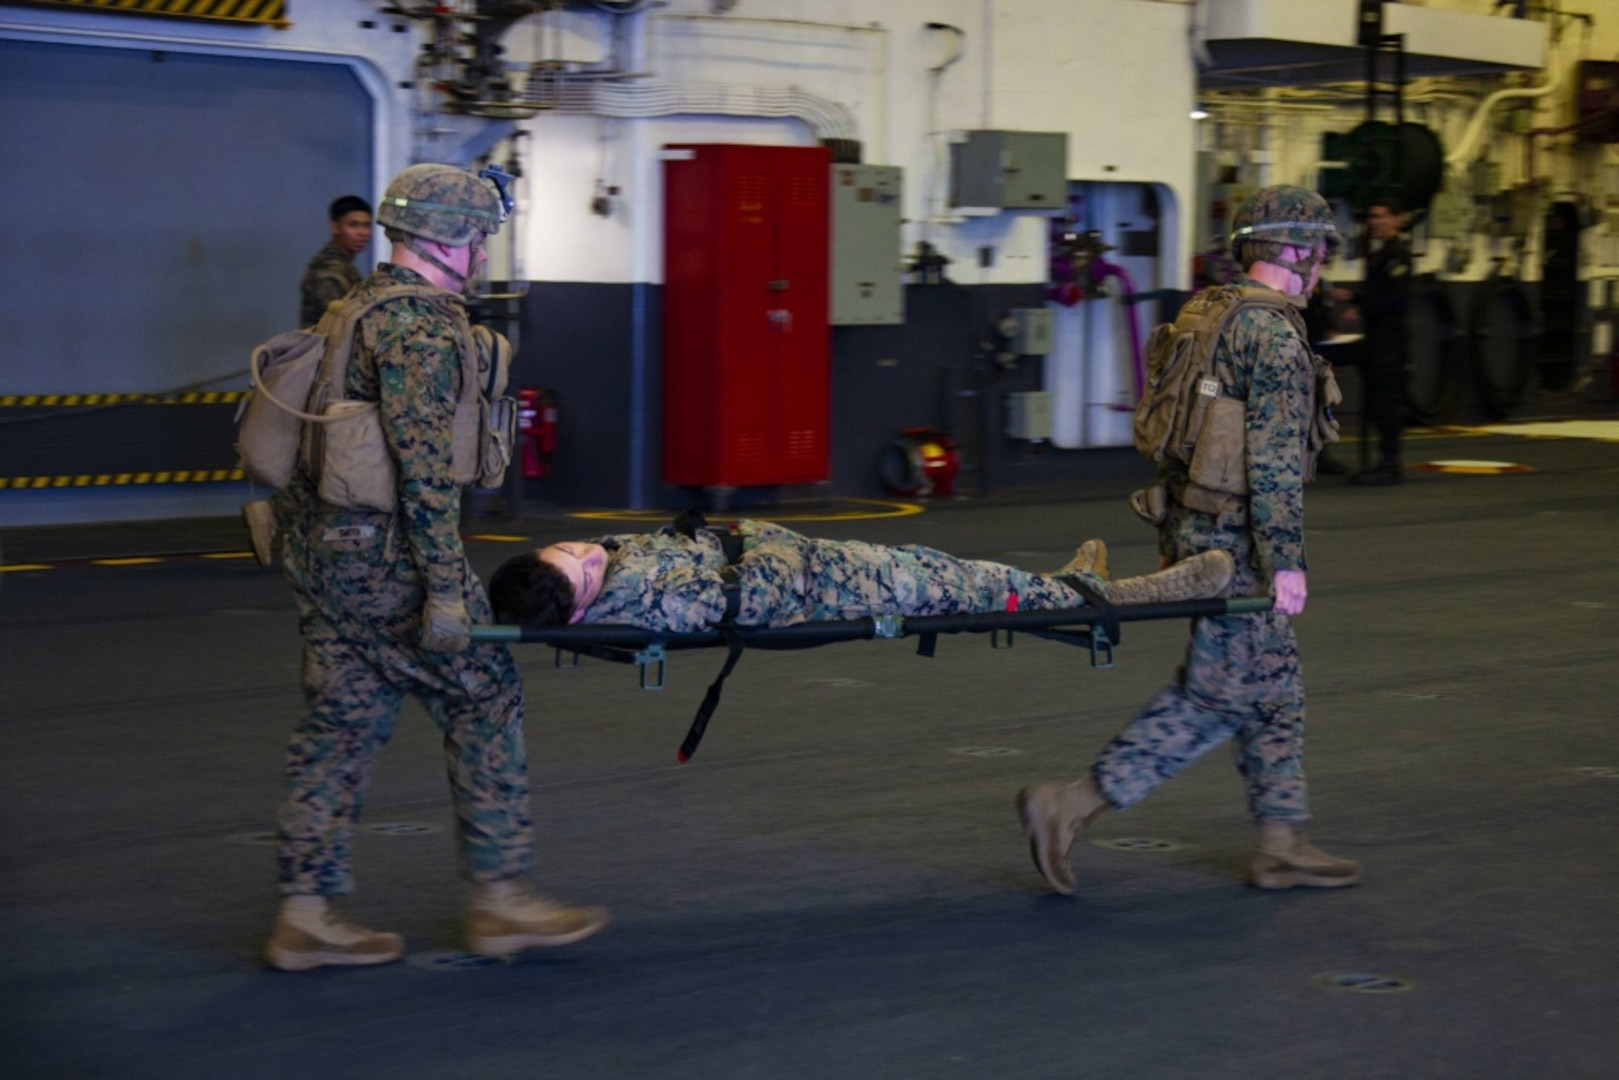 Marines with the 31st Marine Expeditionary Unit (MEU) and Sailors with the amphibious assault ship USS America (LHA 6) transport a casualty from a simulated combat zone in order to further assess his wounds during a Tactical Combat Casualty Care (TCCC) exercise